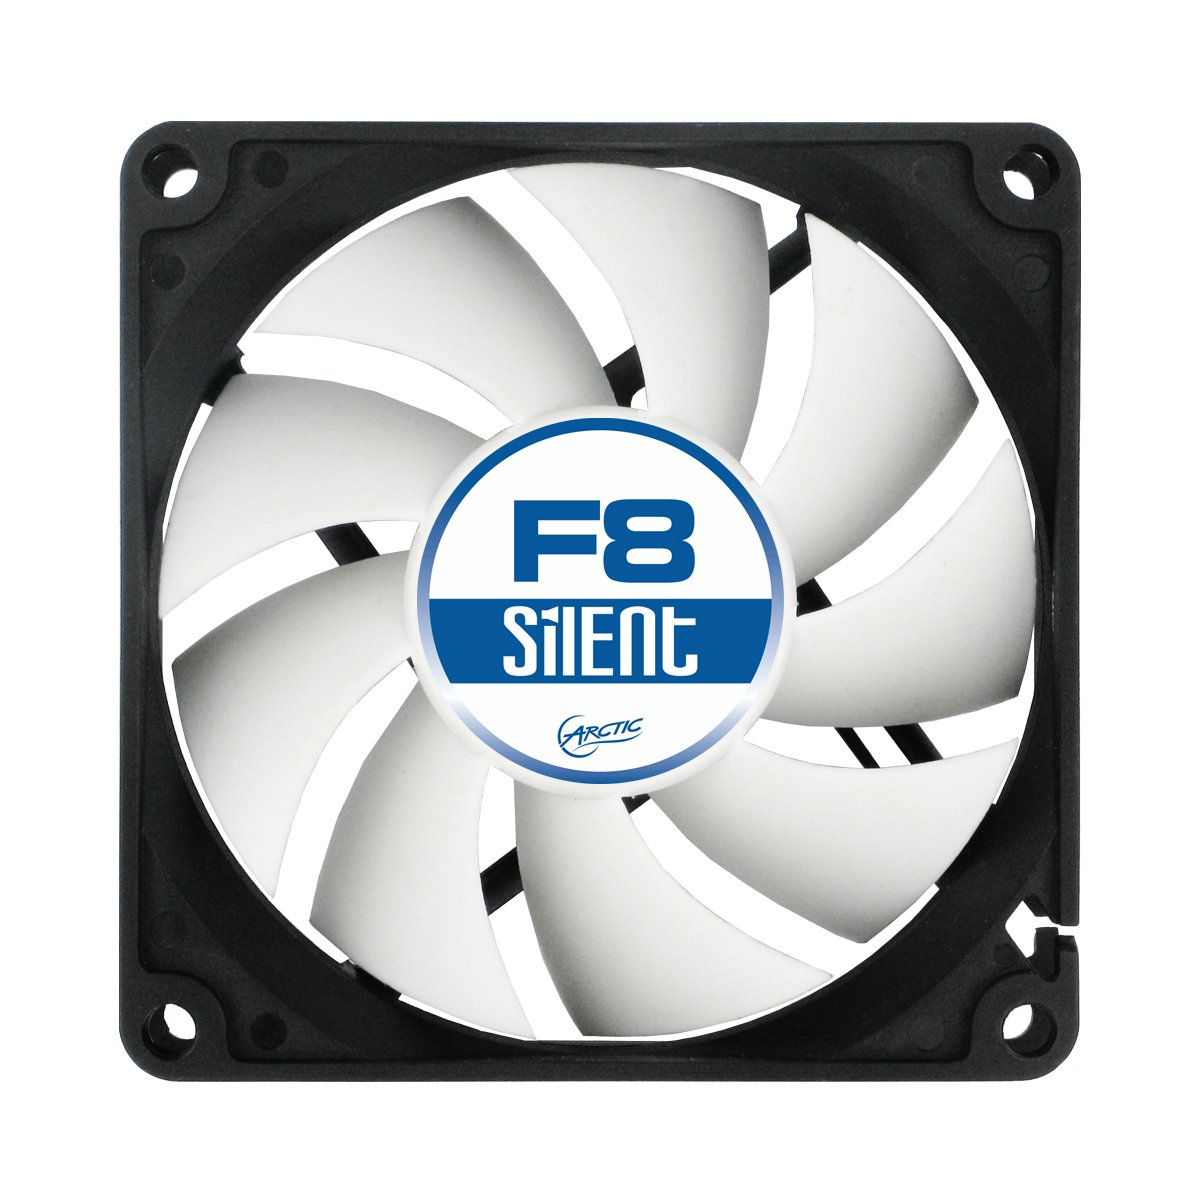 ARCTIC F8 Silent, 80 mm 3-Pin Fan with Standard Case and Higher Airflow, Quiet and Efficient Ventilation by ARCTIC (Image #2)